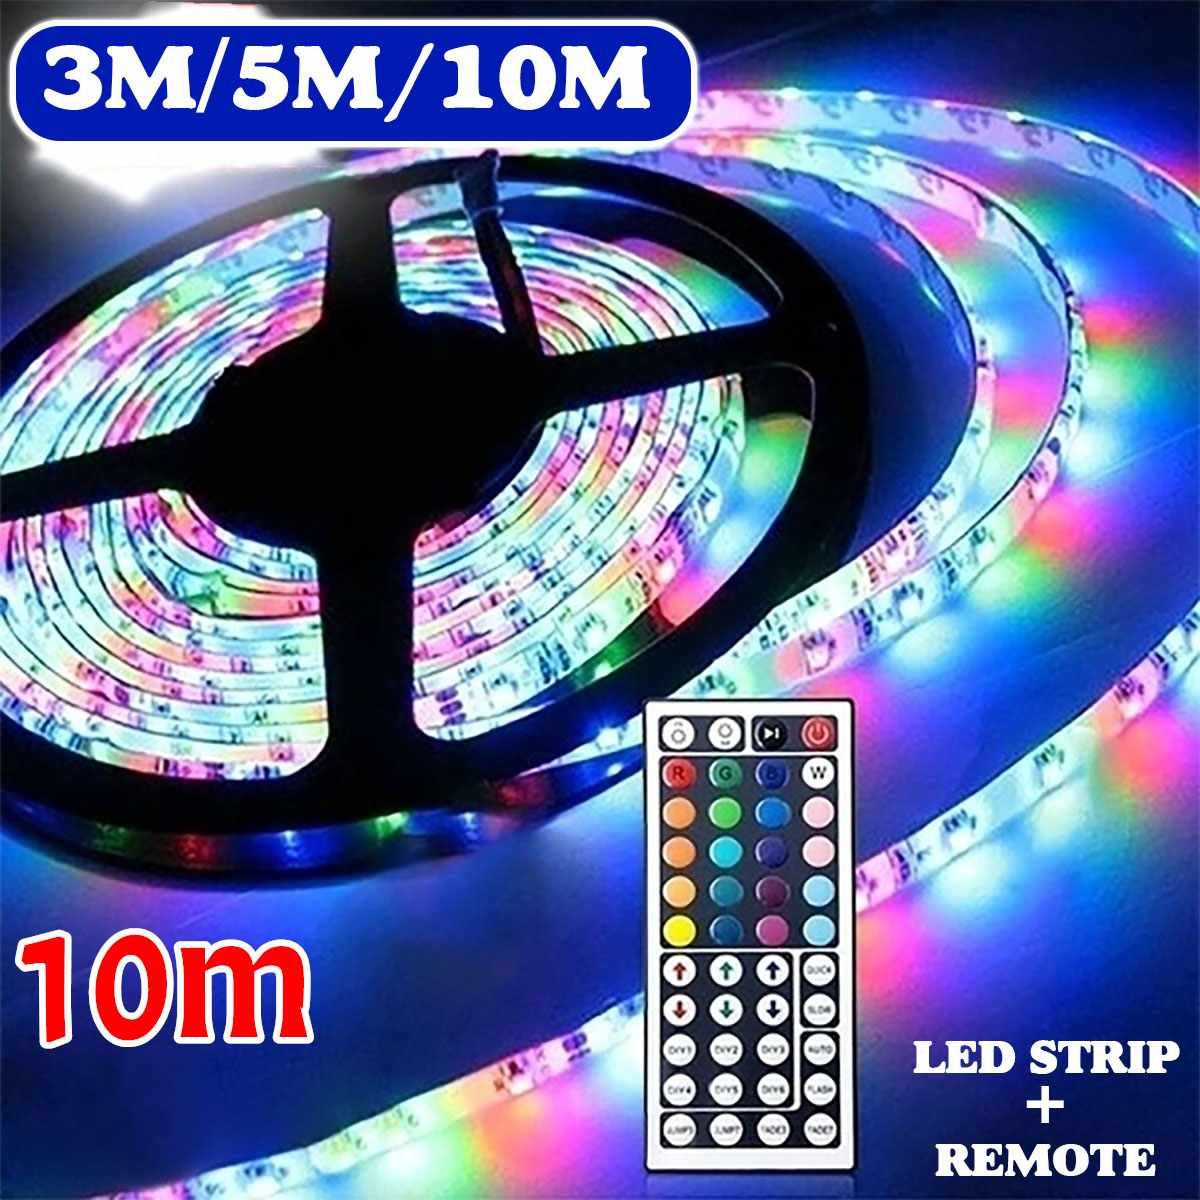 600 LED 3528 SMD RGB Strip Light String Tape 3/5/10M 12V Non-waterproof + 44 Key IR Remote Control For Under Cabinet Decor